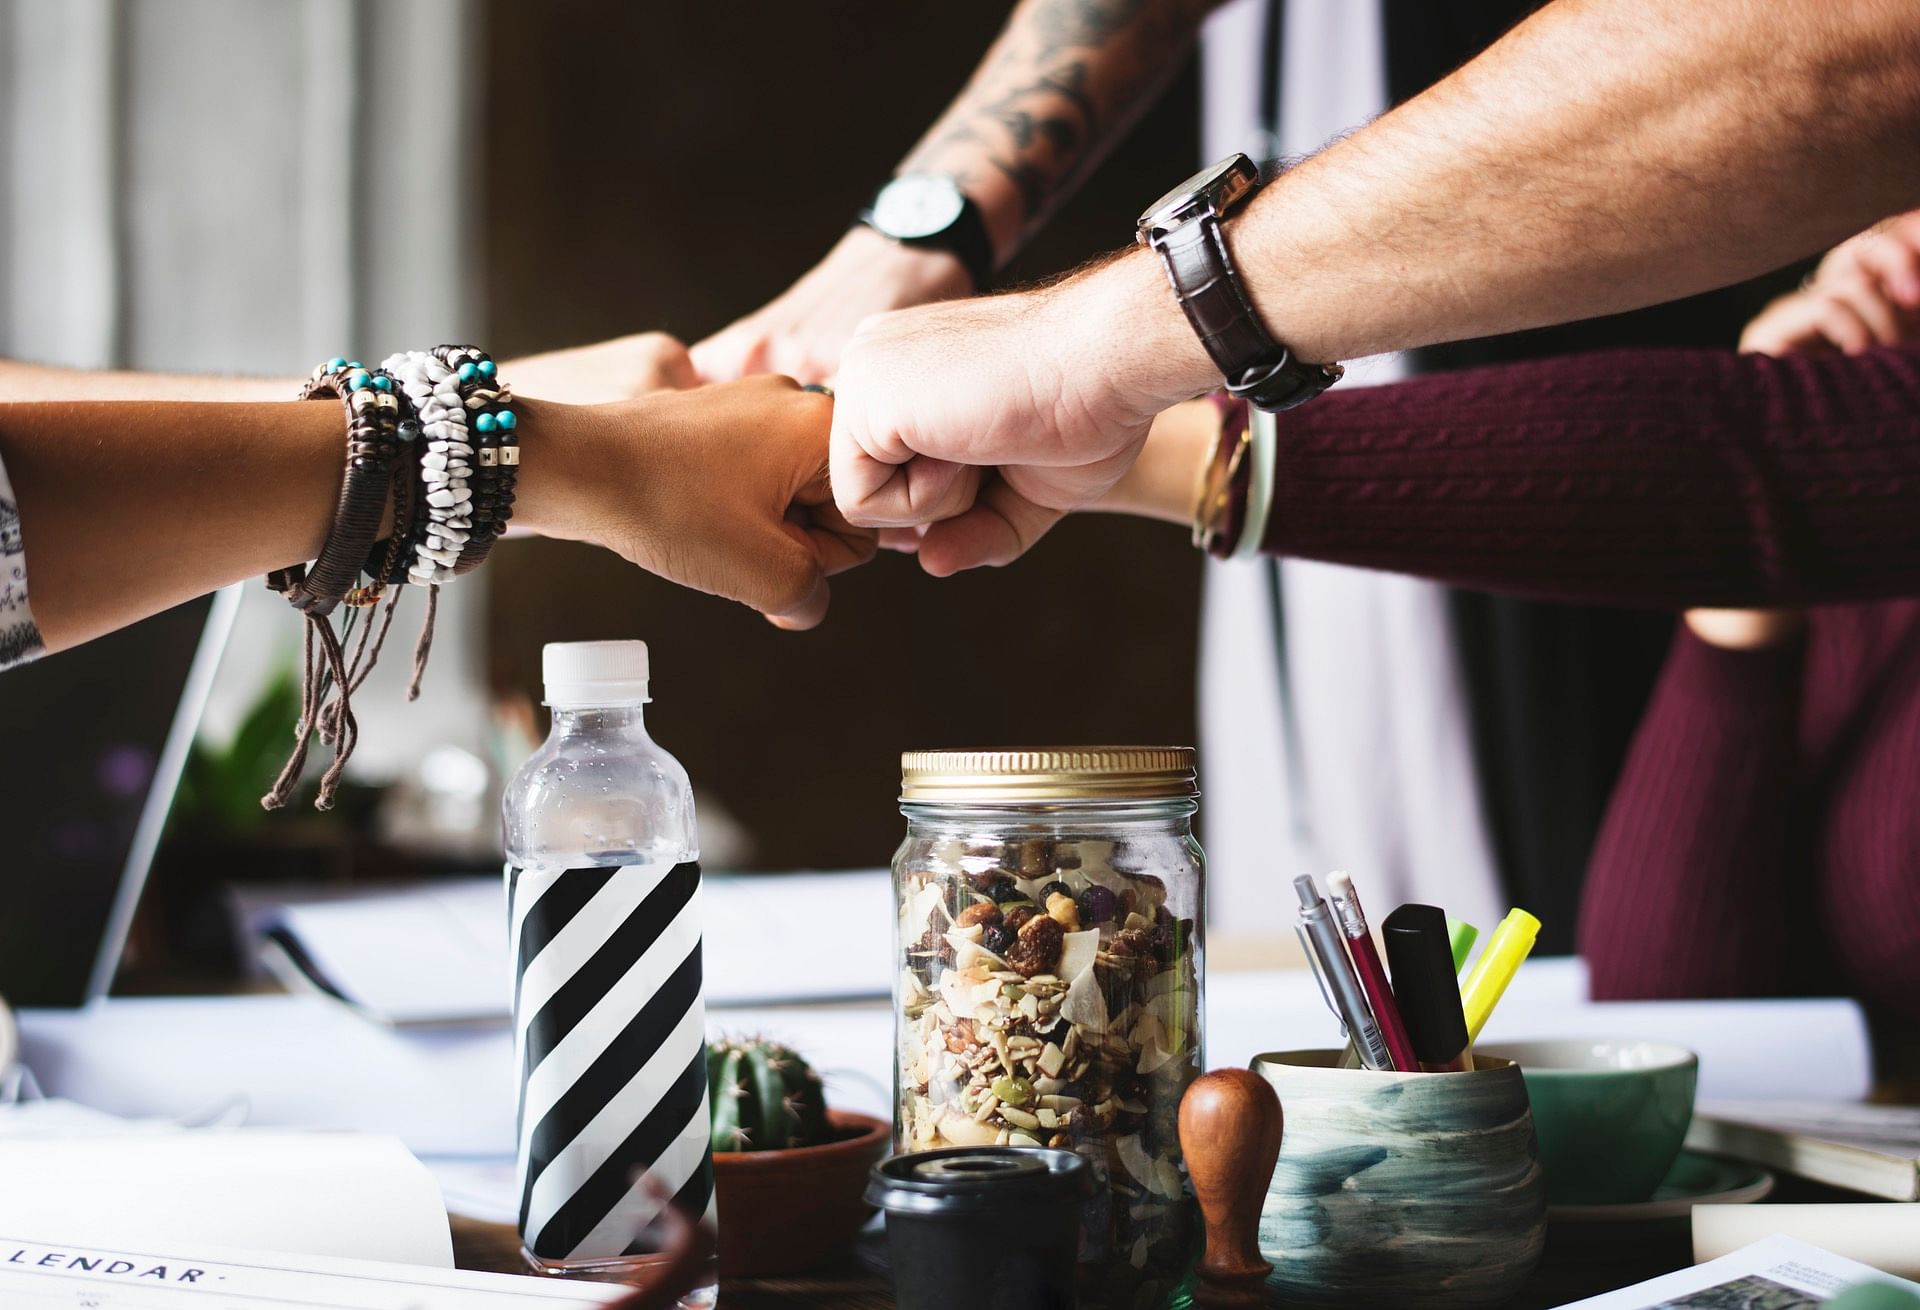 How to ignite the fire of creativity in your team